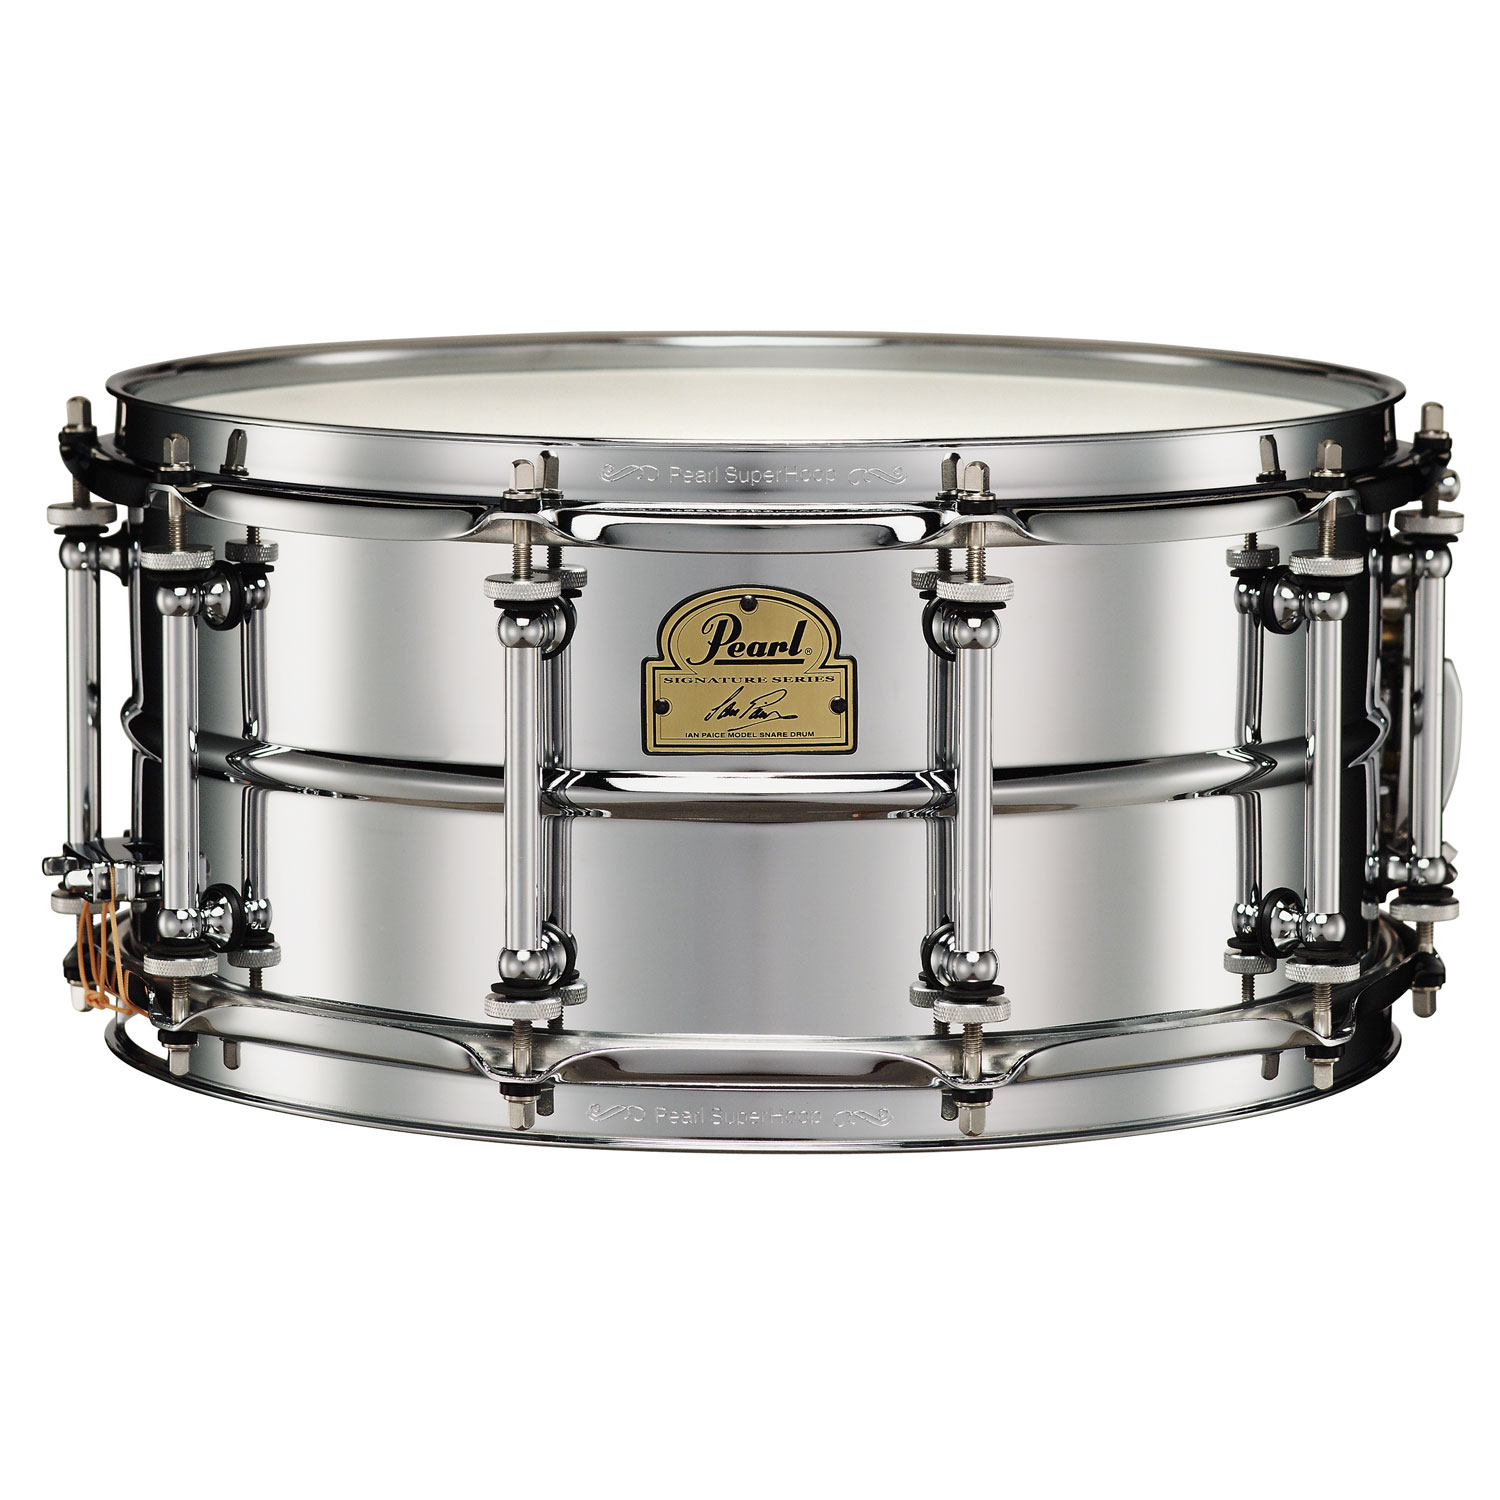 "Pearl 14"" x 6.5"" Ian Paice Chrome Snare Drum"